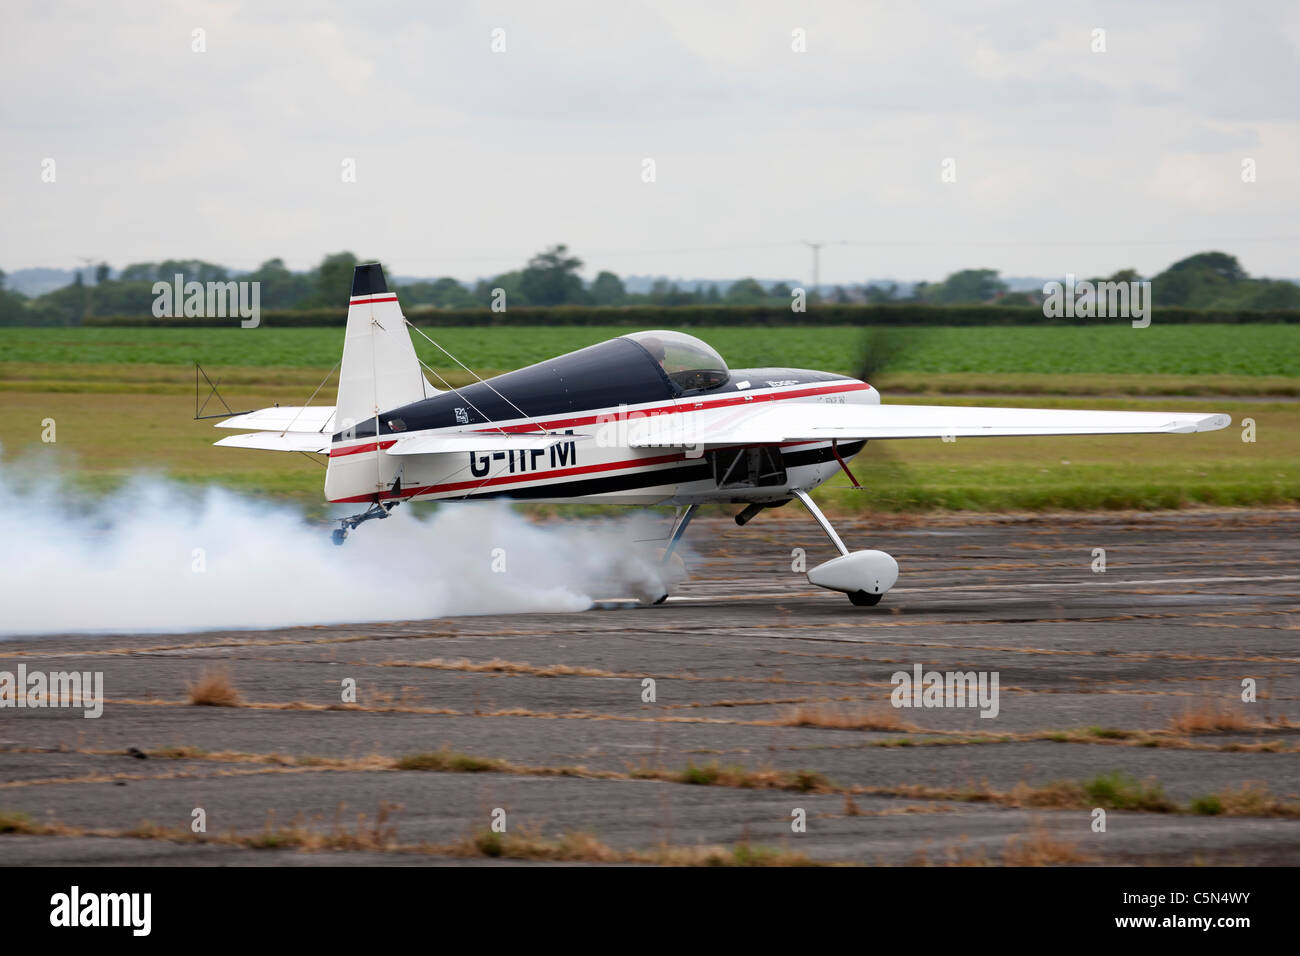 Edge 360 G-IIFM taking-off trailing smoke at Wickenby Airfield - Stock Image